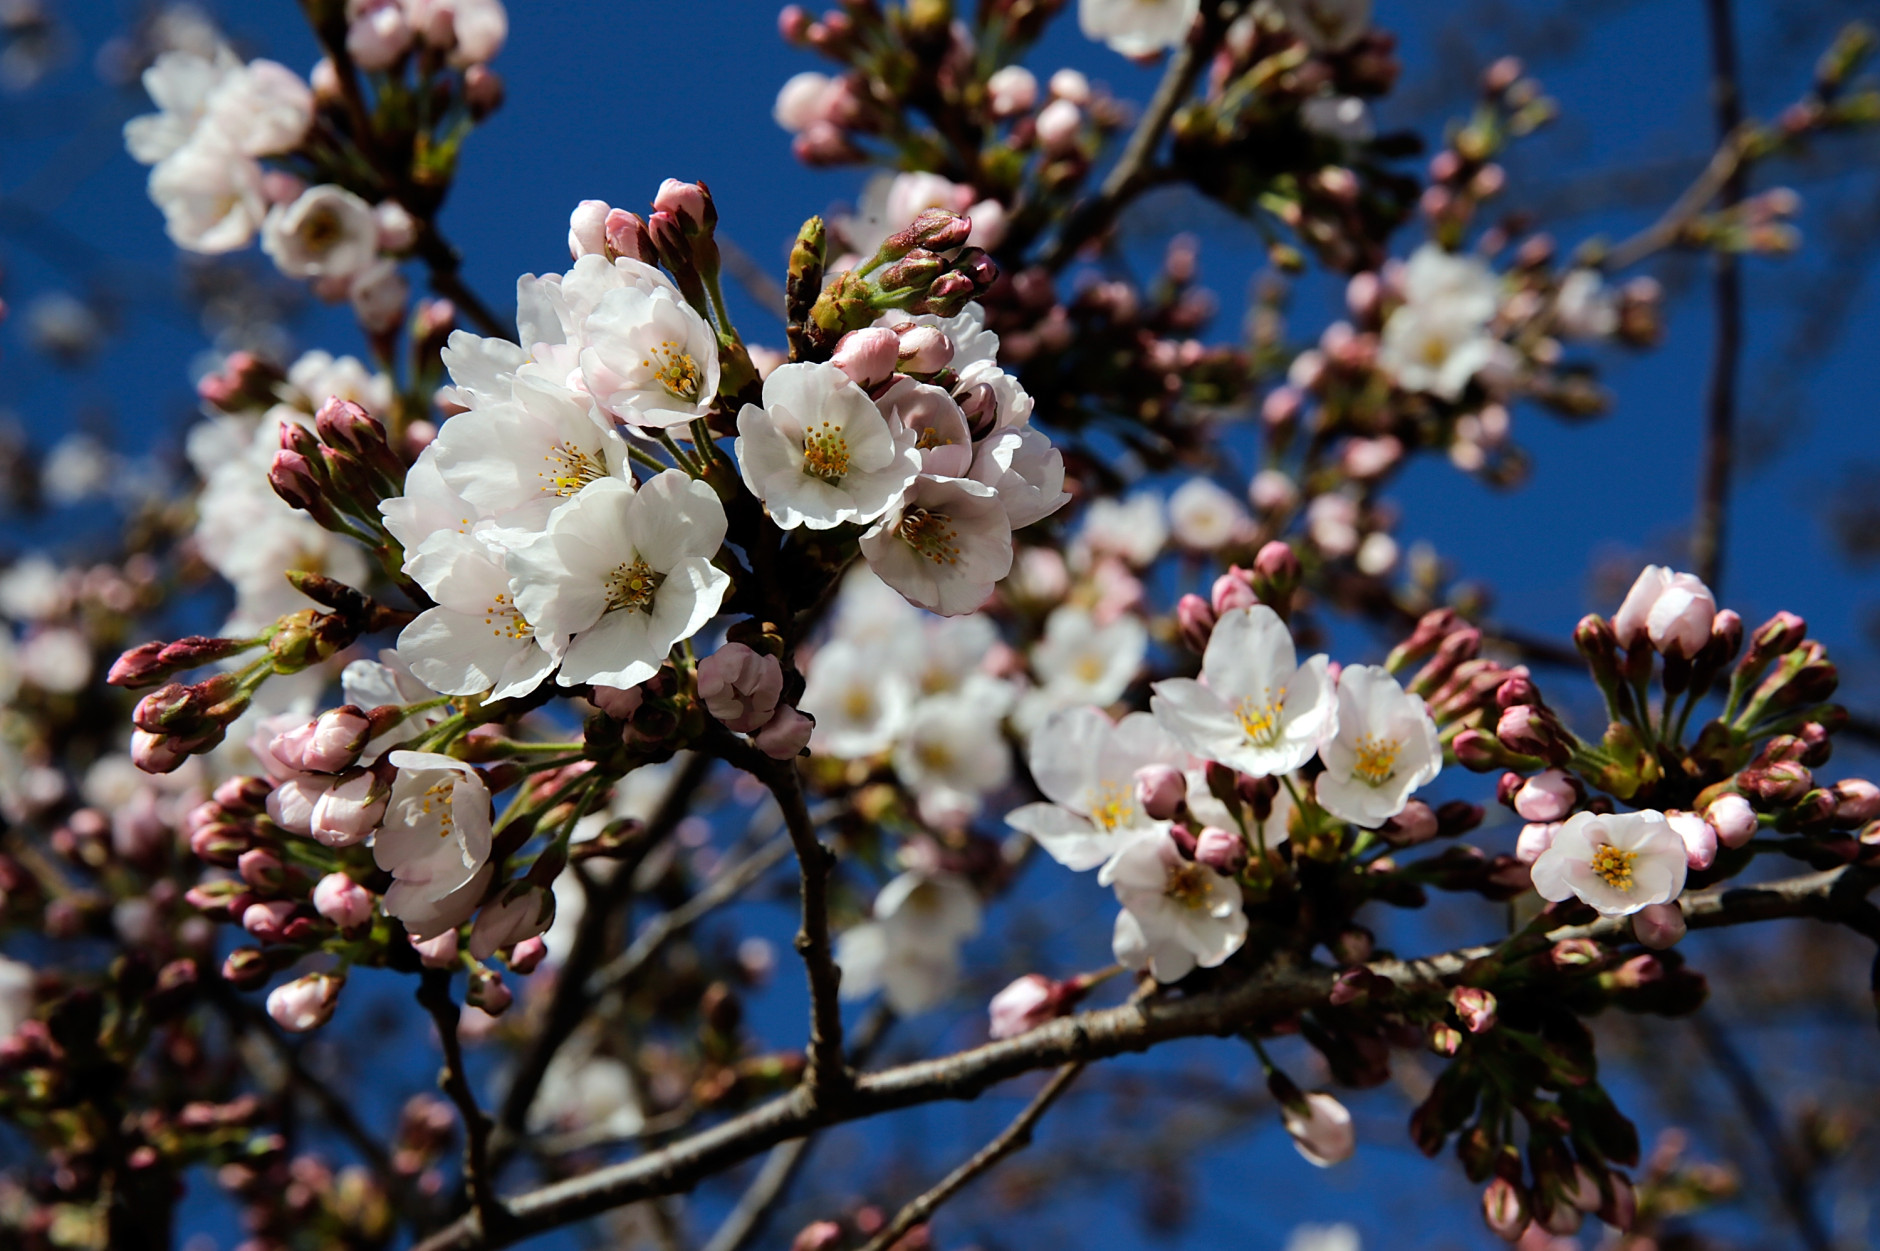 WASHINGTON, DC - APRIL 03:  Cherry blossoms slowly start to open around the Tidal Basin as a colder-than-normal March and chilly April has delayed the beginning of the cherry blossom season in the nation's capital April 3, 2013 in Washington, DC. Peak bloom was originally predicted between March 26 and March 30, with the revised prediction moving to April 6-10.  (Photo by Win McNamee/Getty Images)